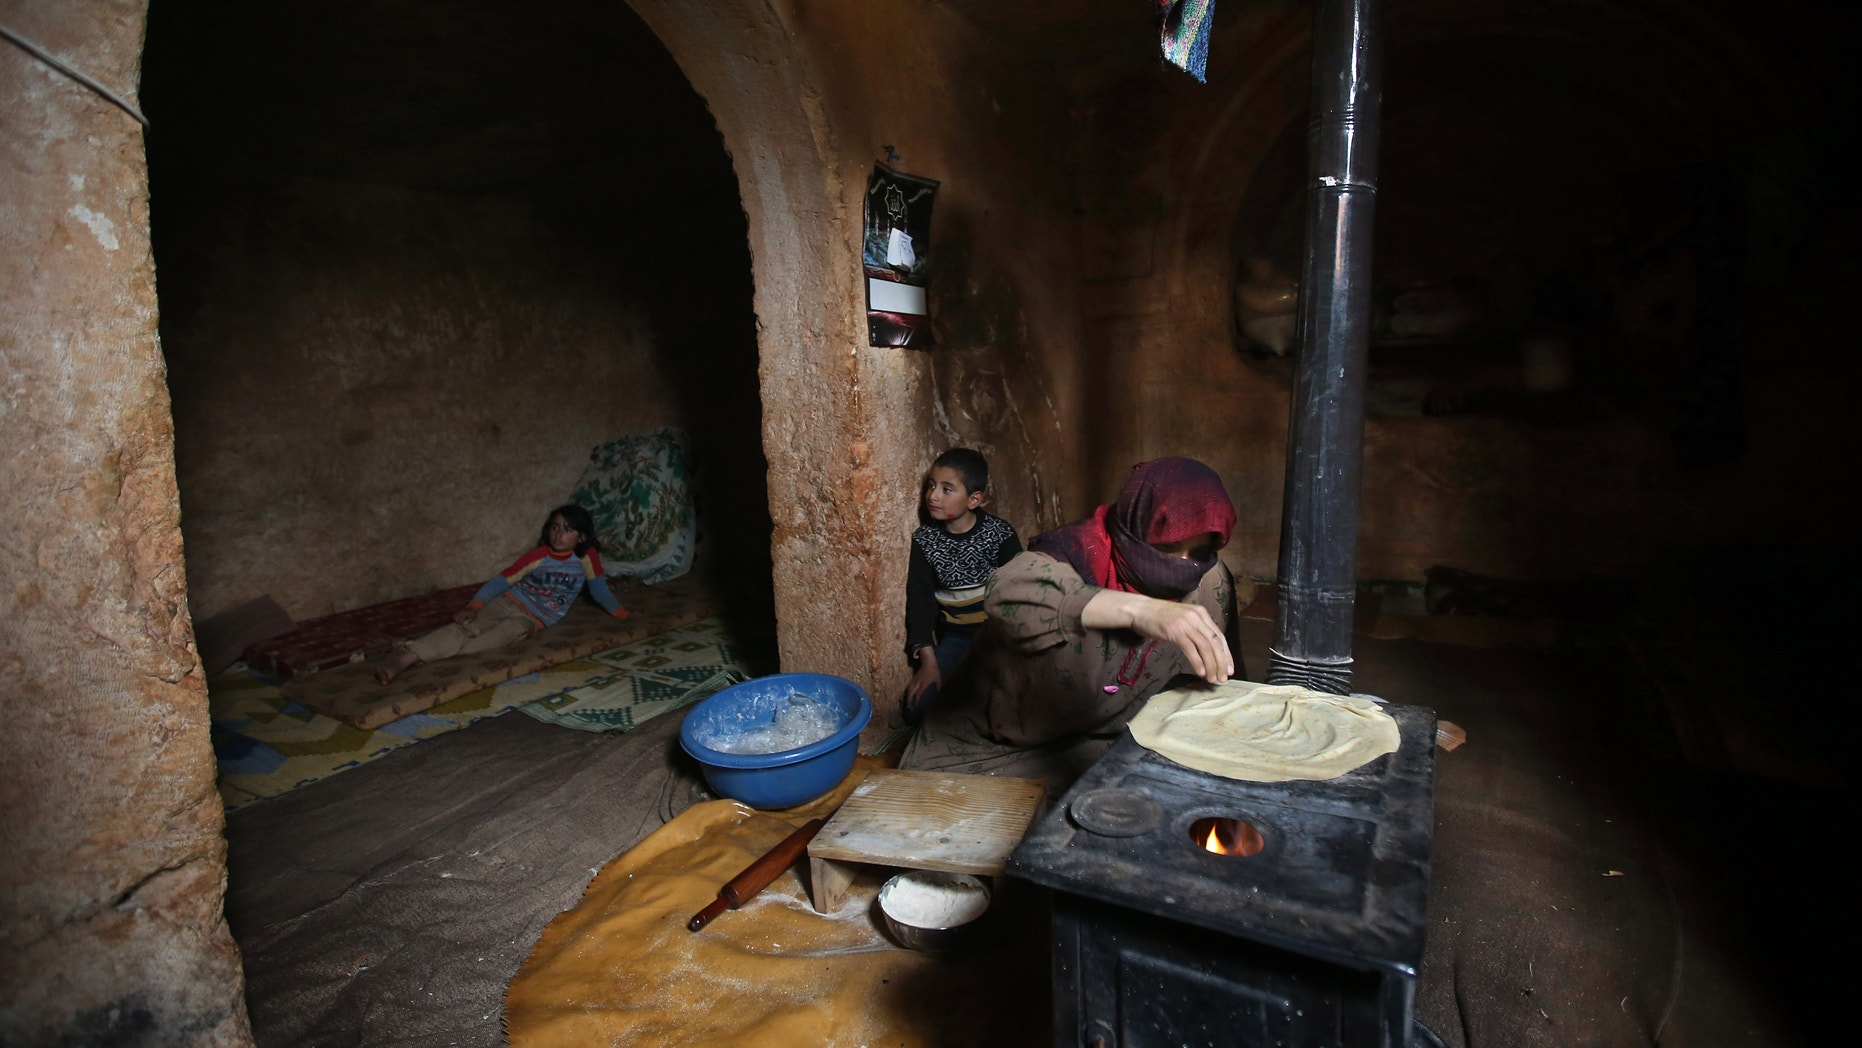 Feb. 28, 2013 - Nadia, 53, makes bread on a wooden stove, at an underground Roman tomb which she uses as a shelter with her family from Syrian government forces shelling and airstrikes.